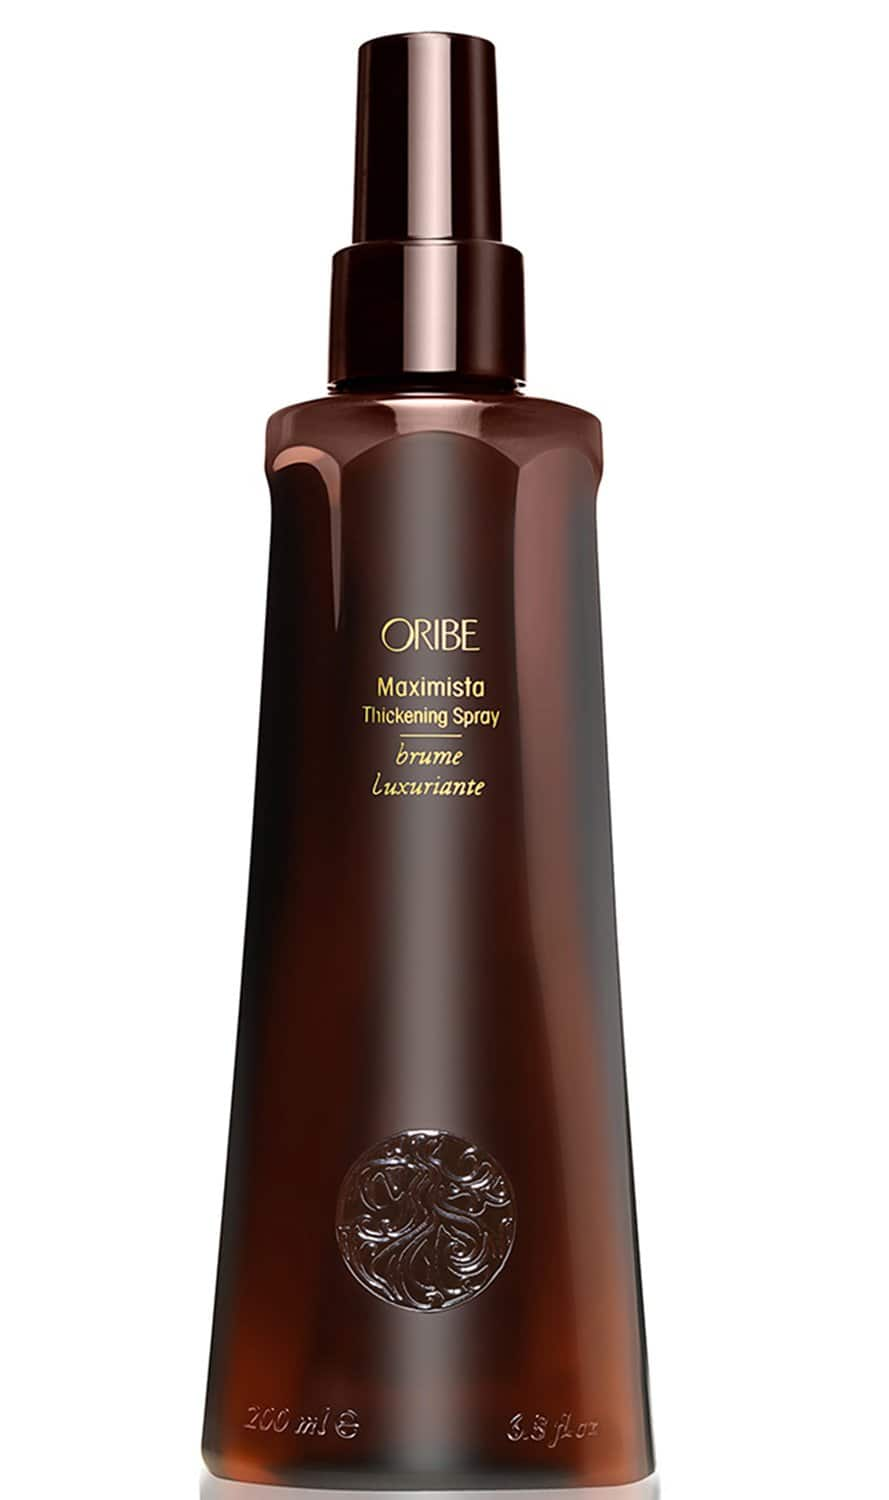 Maximista Thickening Spray 200ml | Oribe